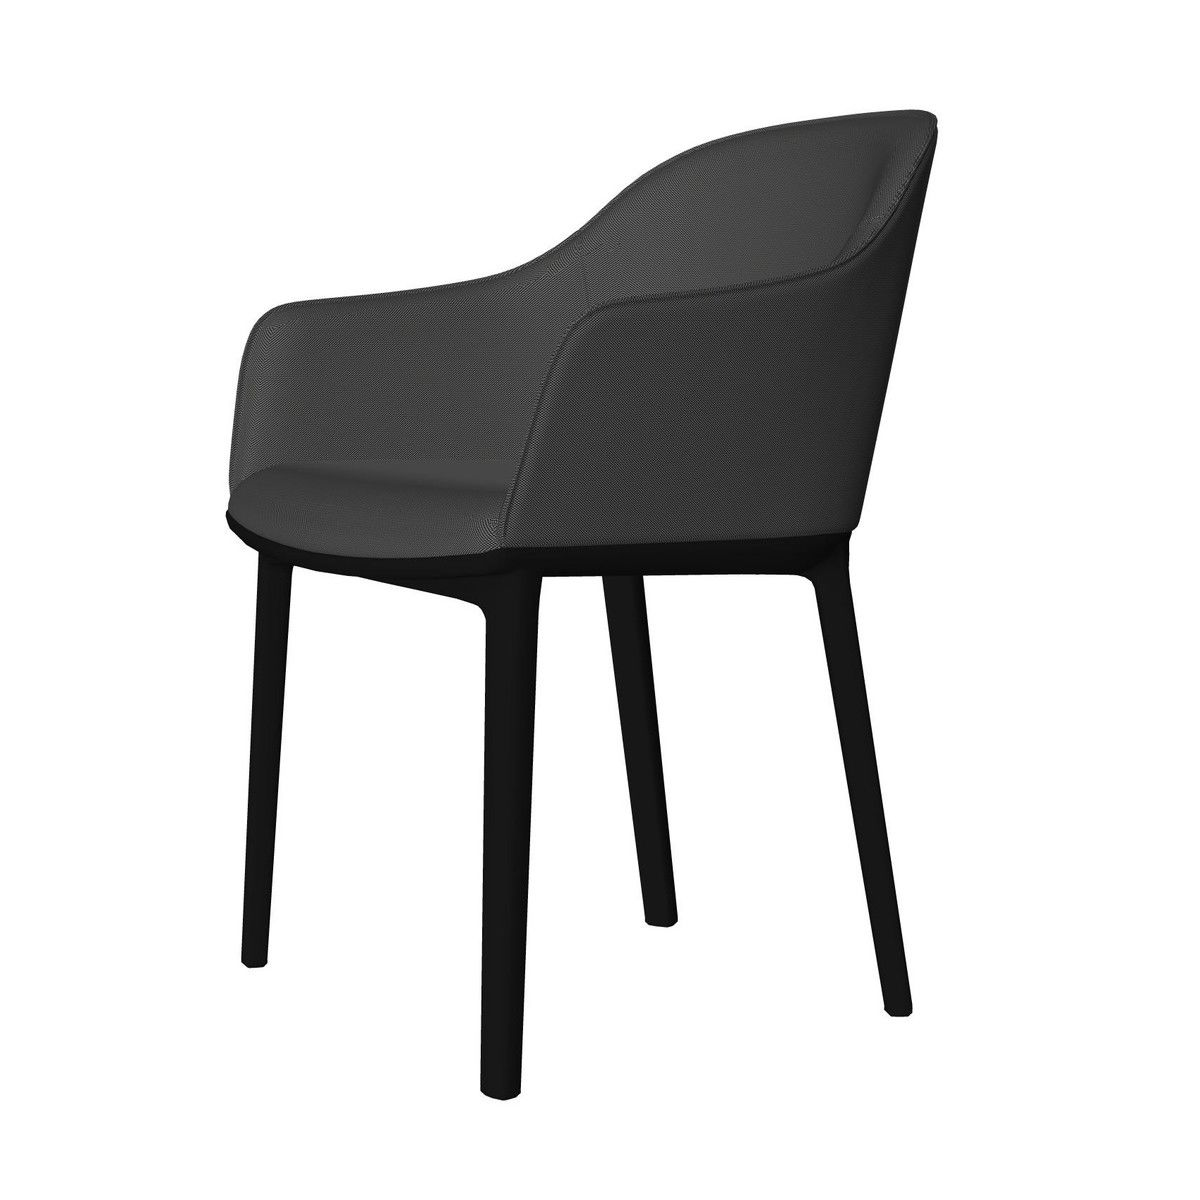 softshell chair conference chair vitra. Black Bedroom Furniture Sets. Home Design Ideas